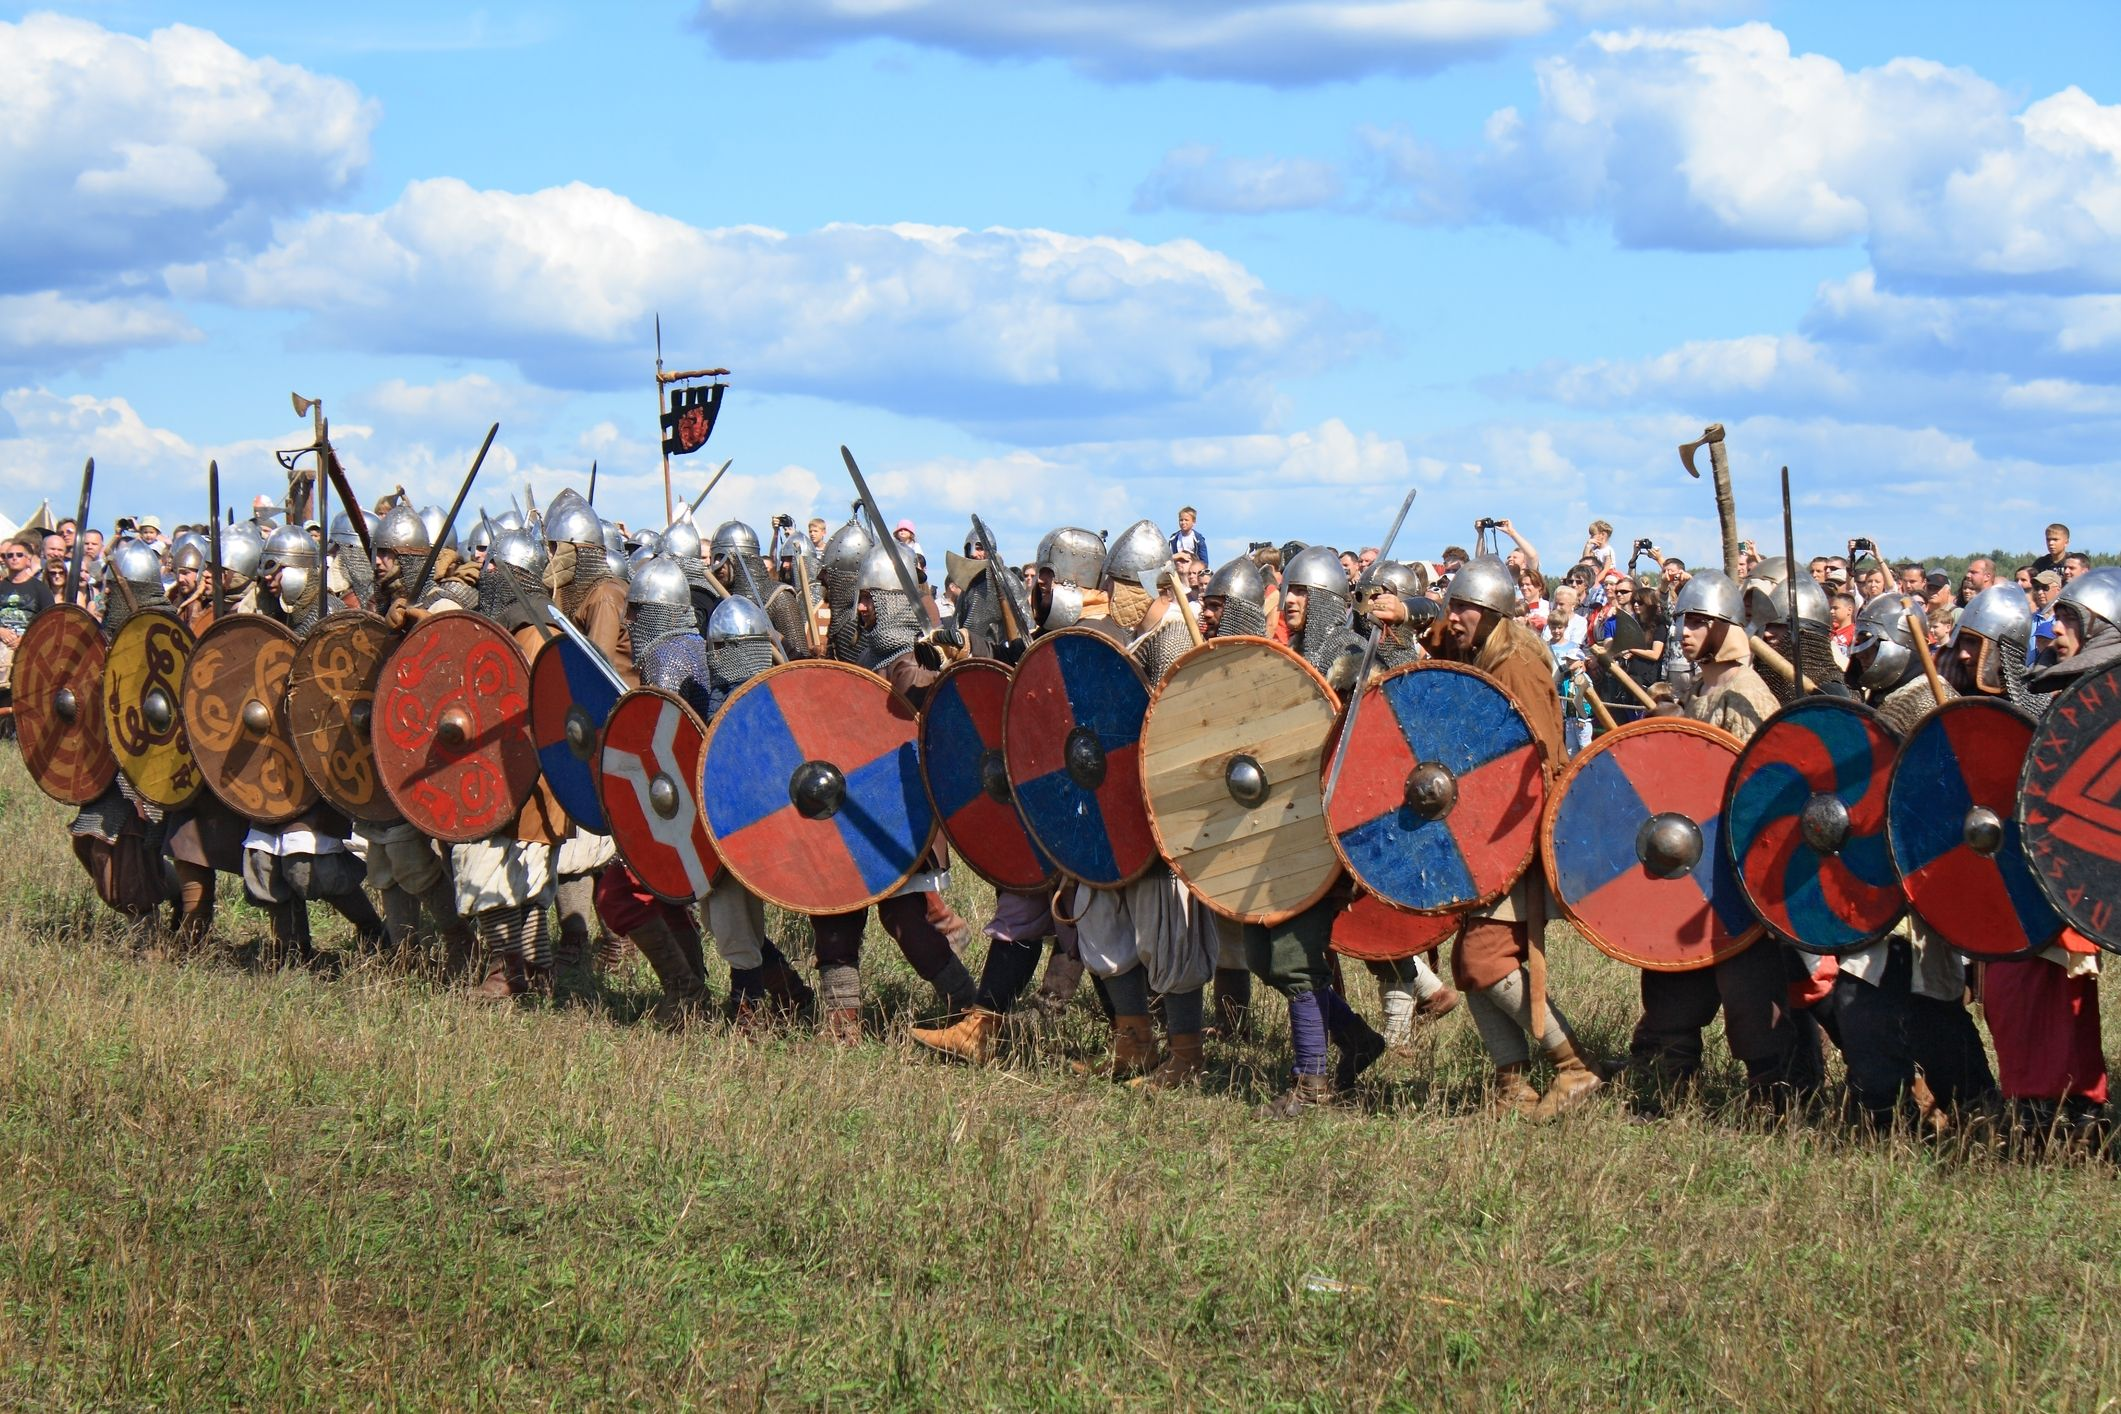 Early Medieval Battle Ancient Warfare Fantasy Story Ideas Medieval